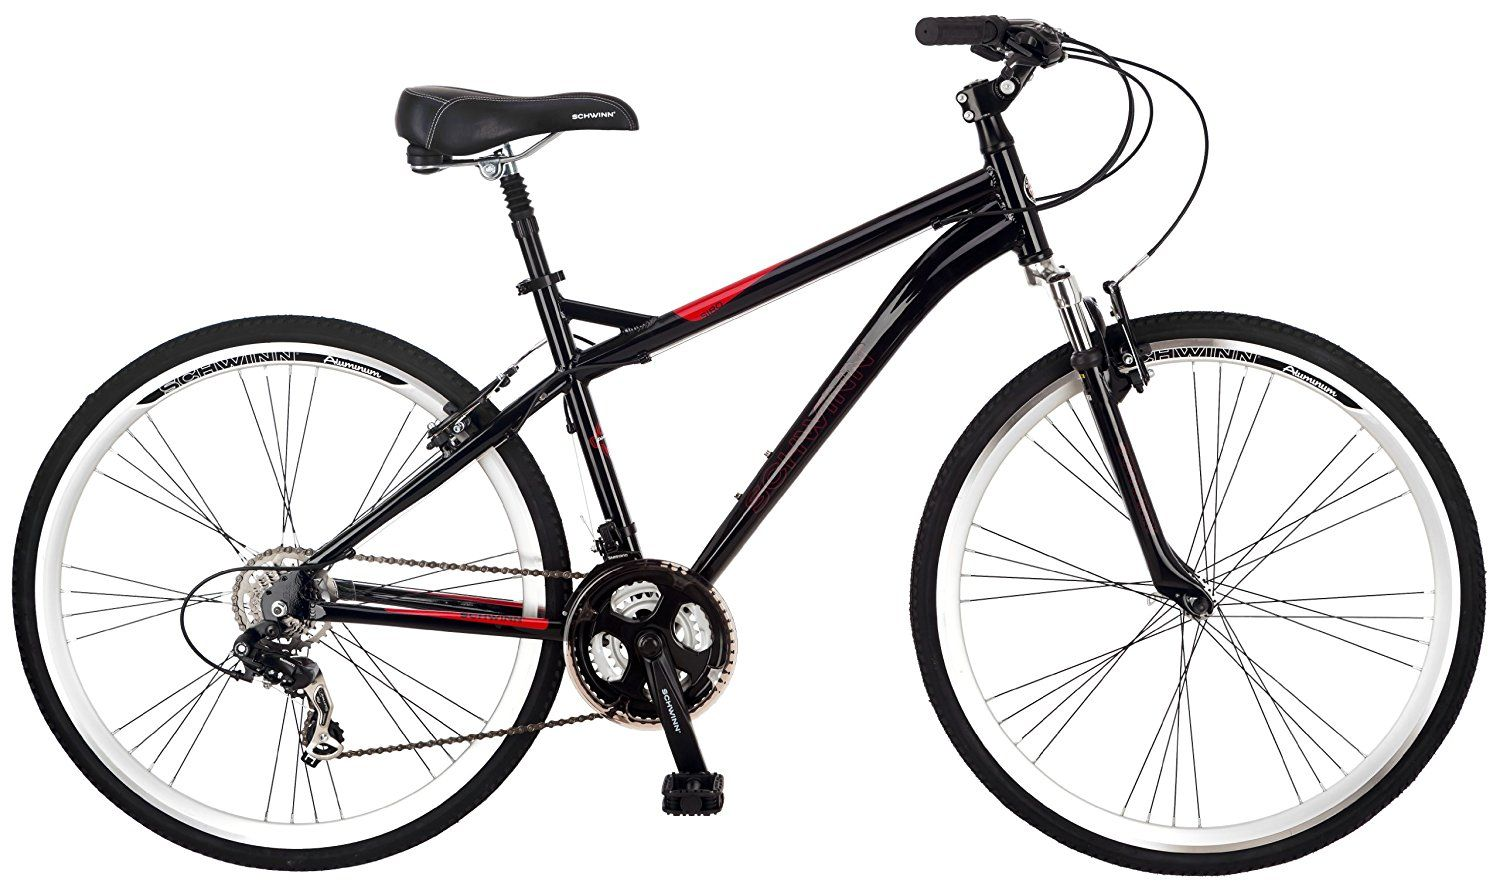 Top 10 Best Hybrid Bikes Review In 2020 With Images Hybrid